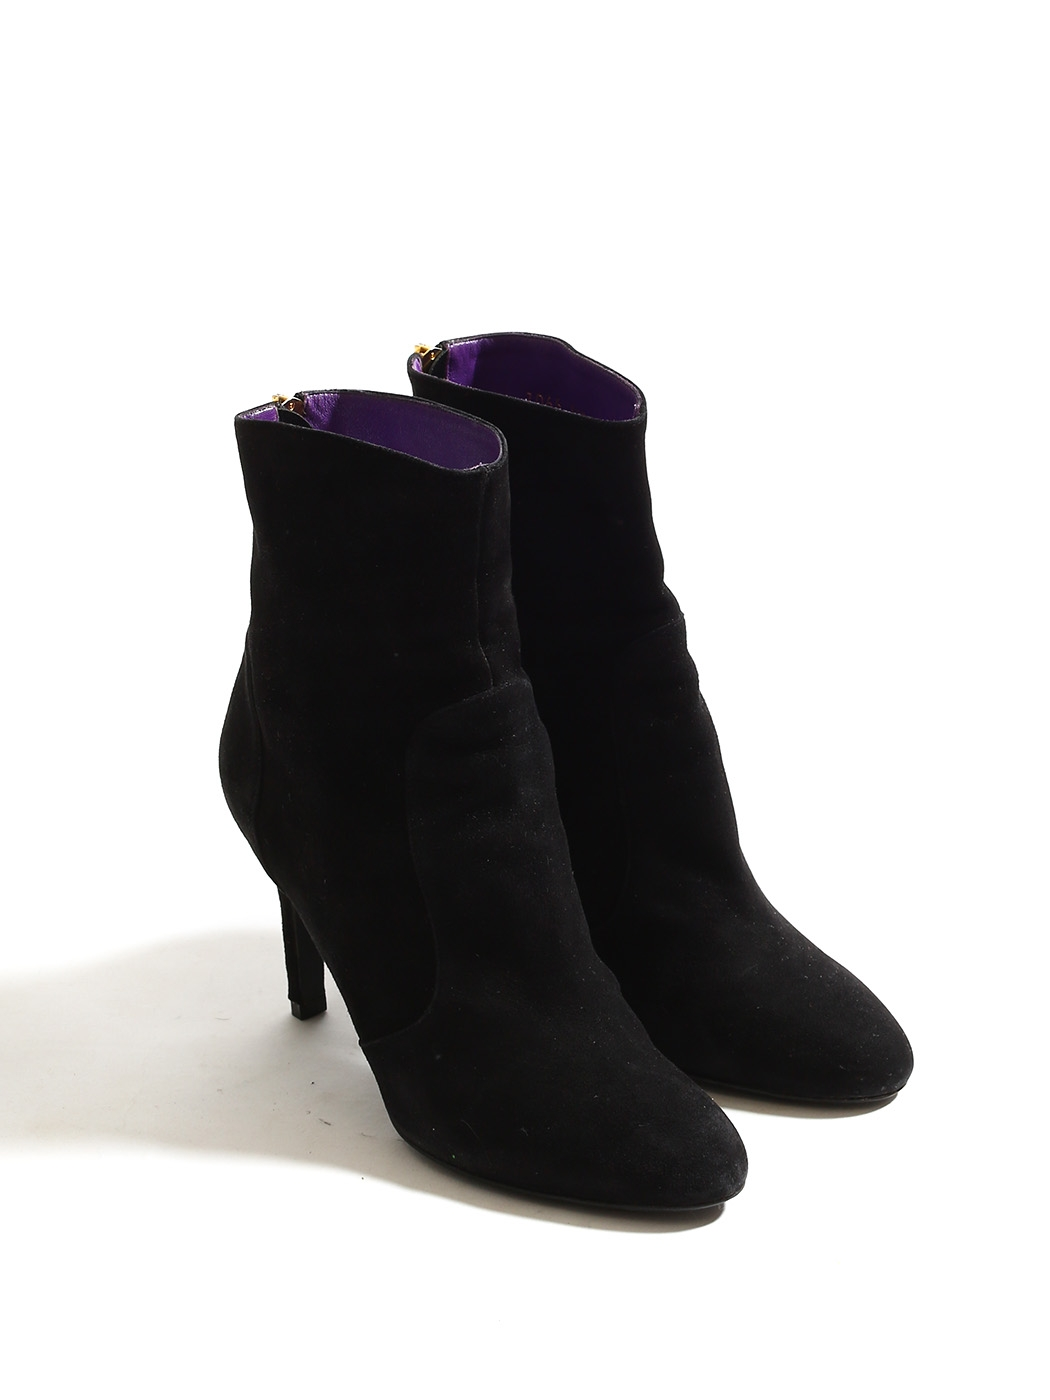 f9466727de0da ... SERGIO ROSSI Black suede ankle boots with back gold zip Retail price € 650 Size 38.5 ...